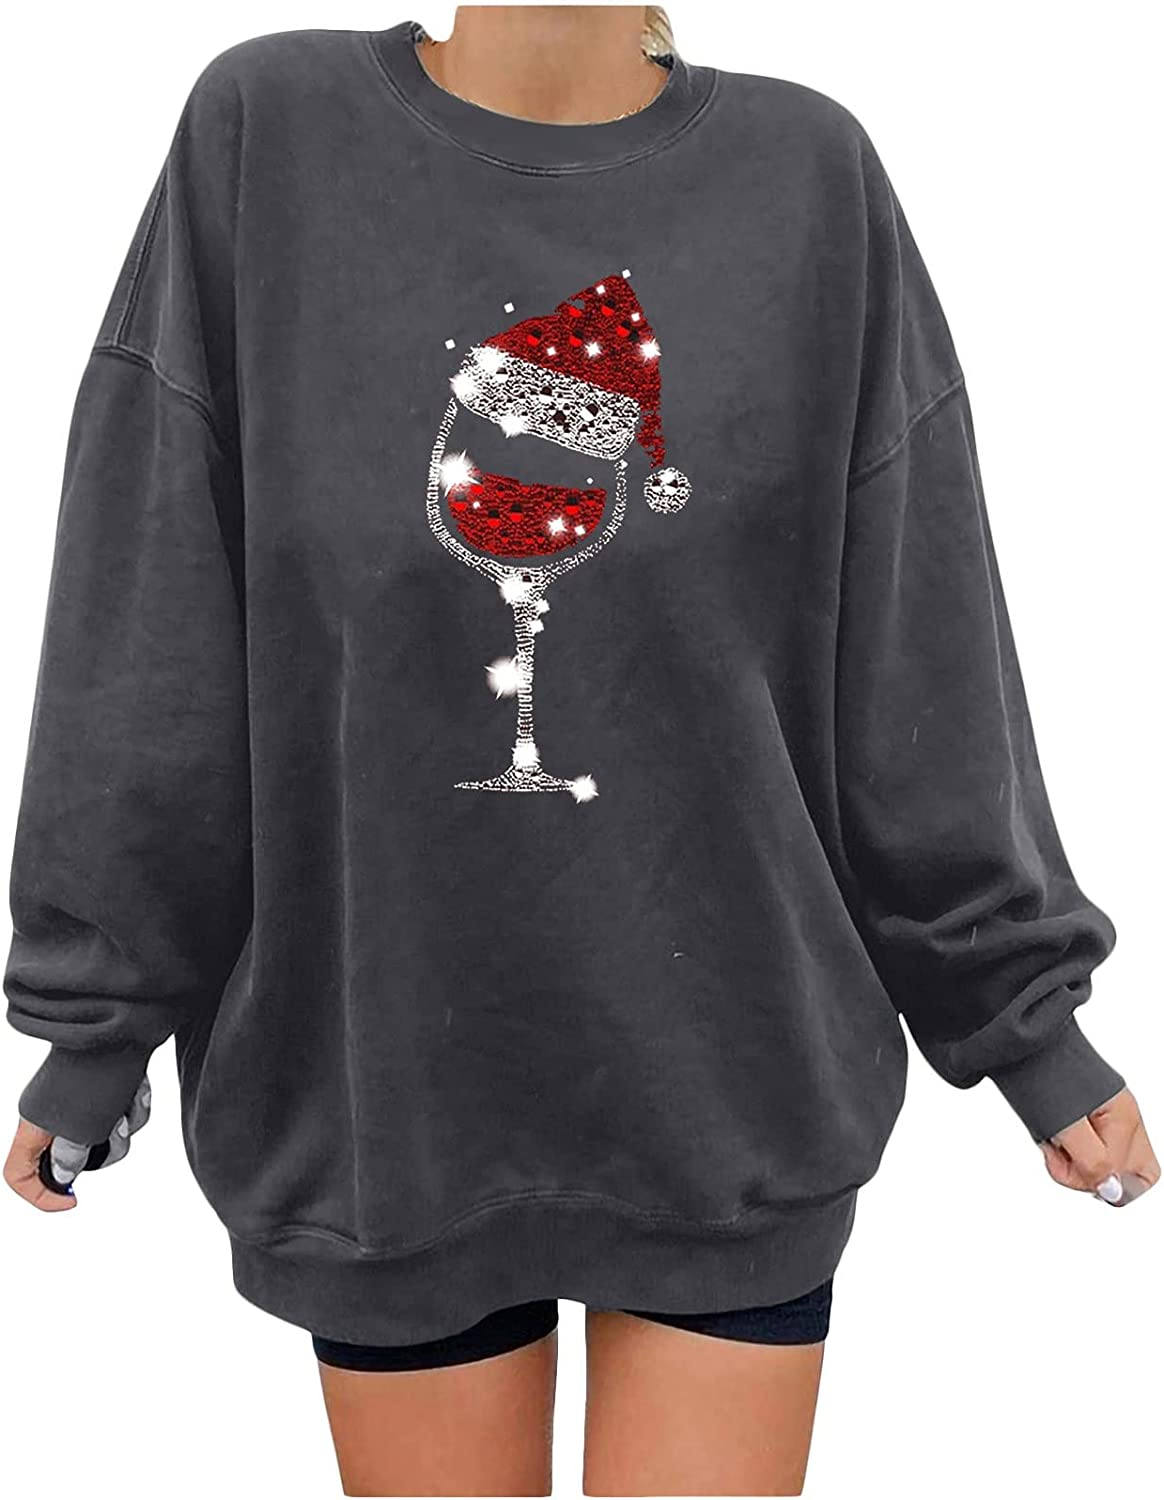 Crewneck Sweatshirts for Women Chriatmas Trendy Wine Glass Vintage Graphic Long Sleeve Shirts Loose Fit Fall Sweaters